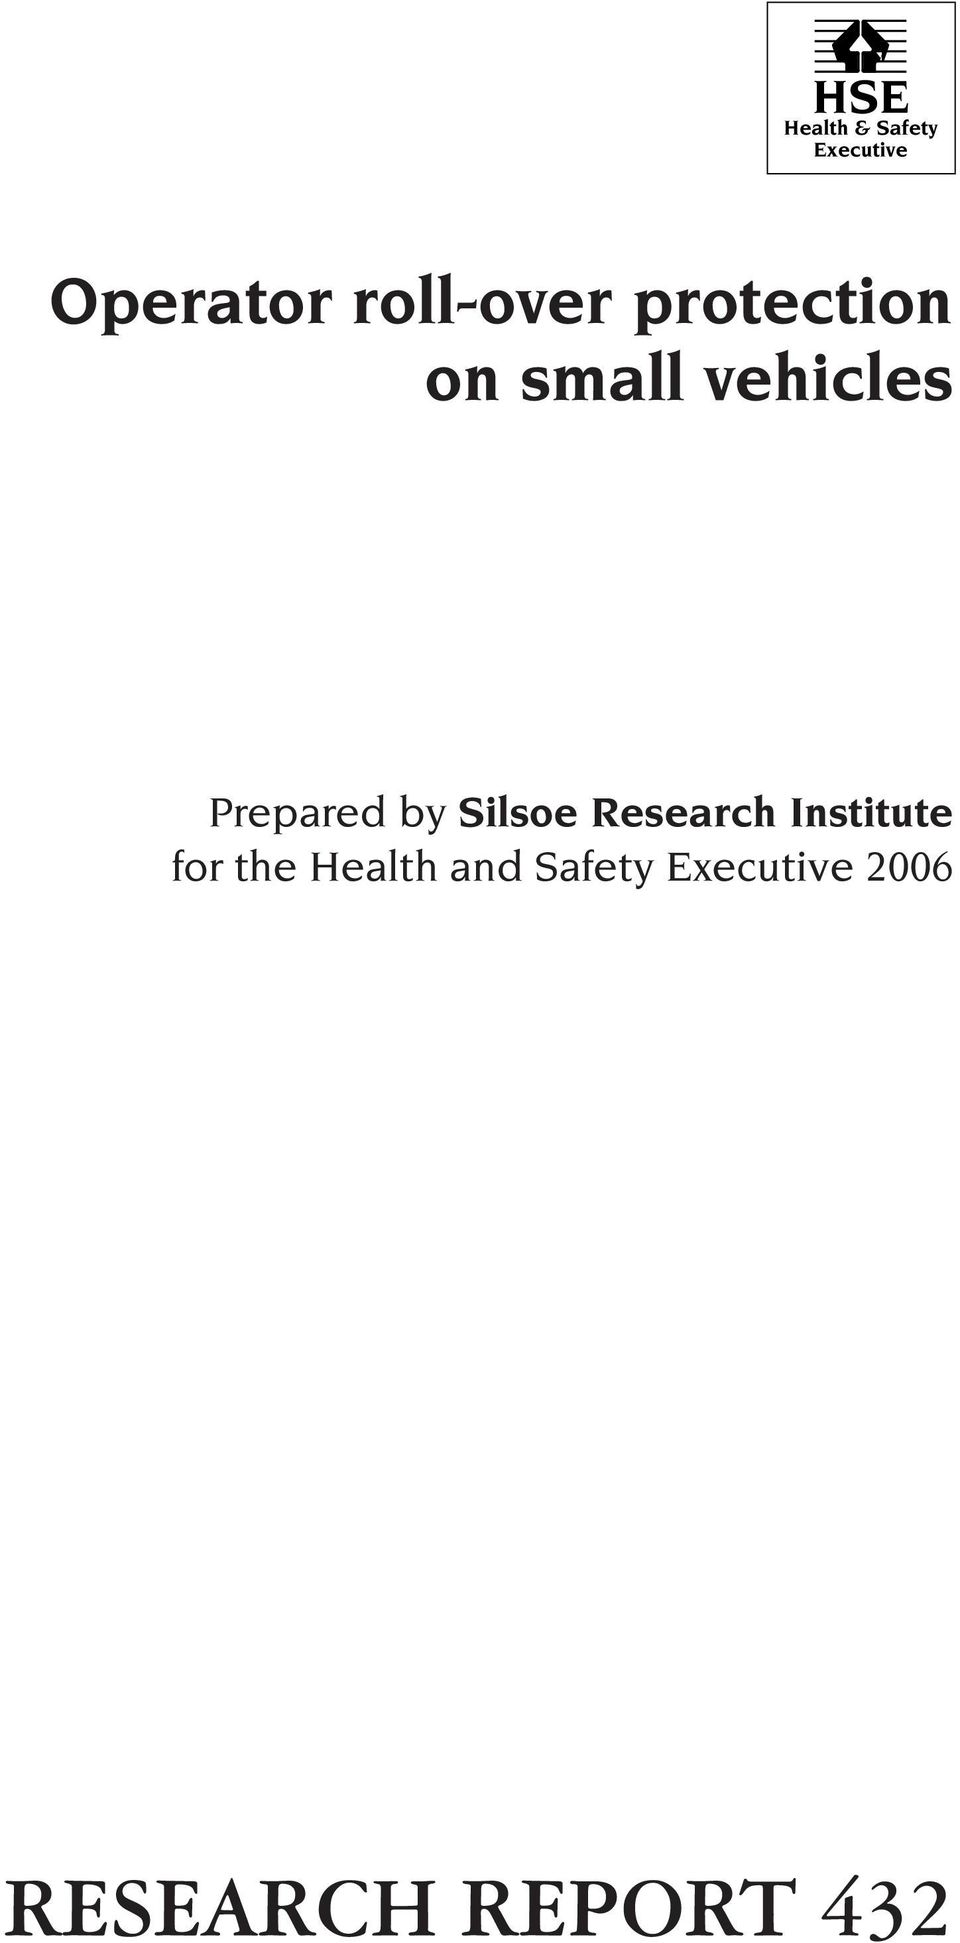 Prepared by Silsoe Research Institute for